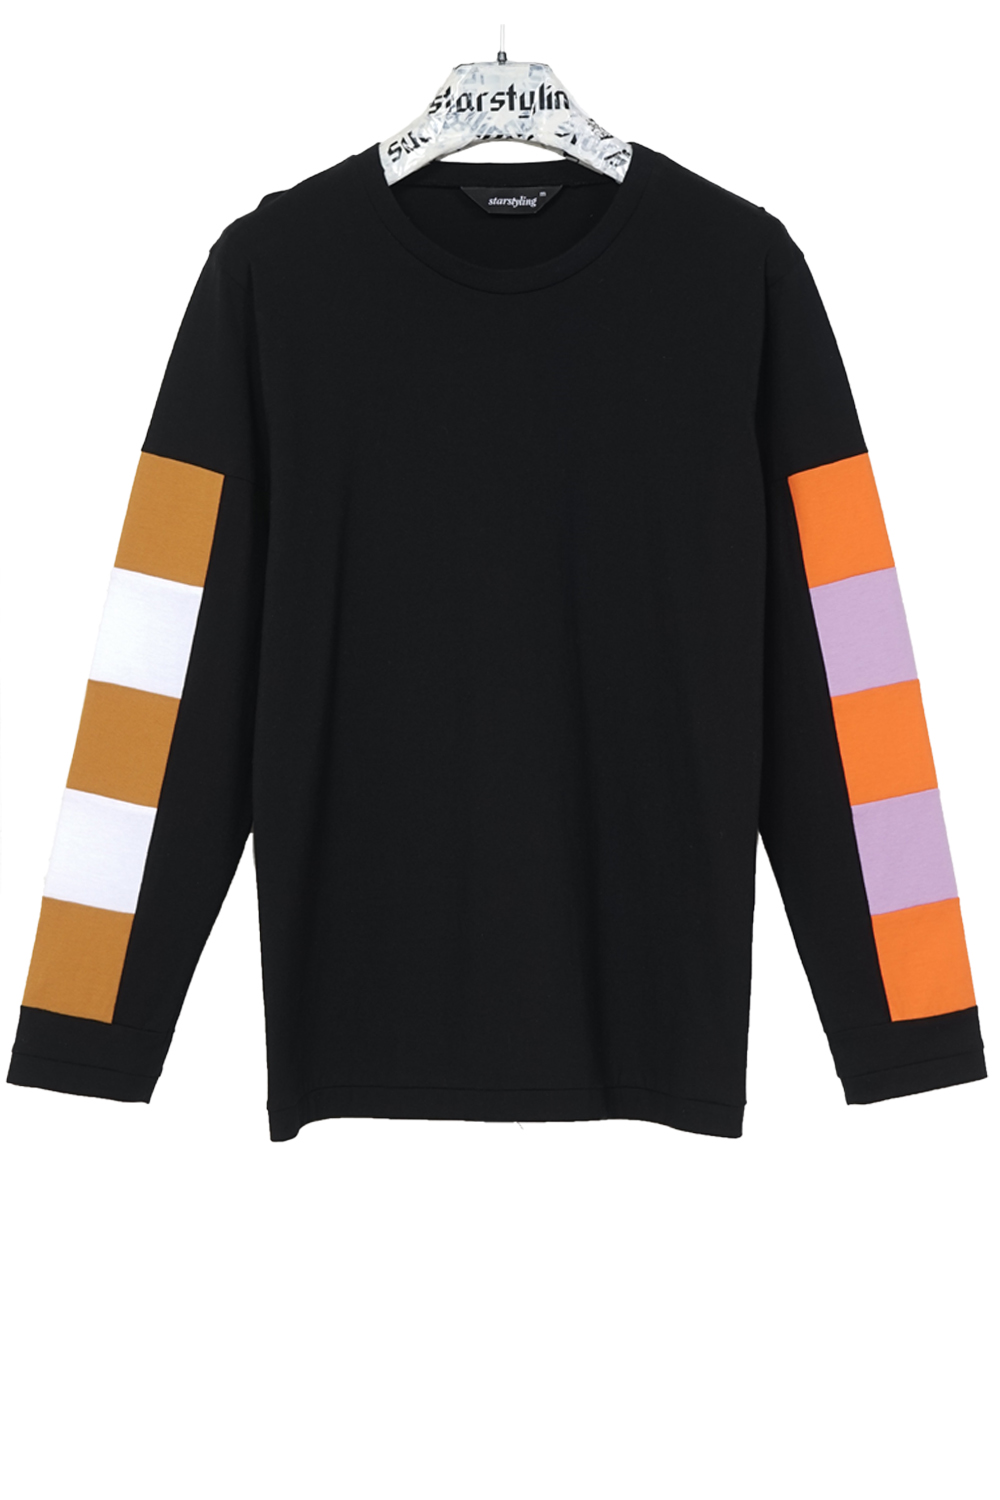 Division Longsleeve   Warme Farben